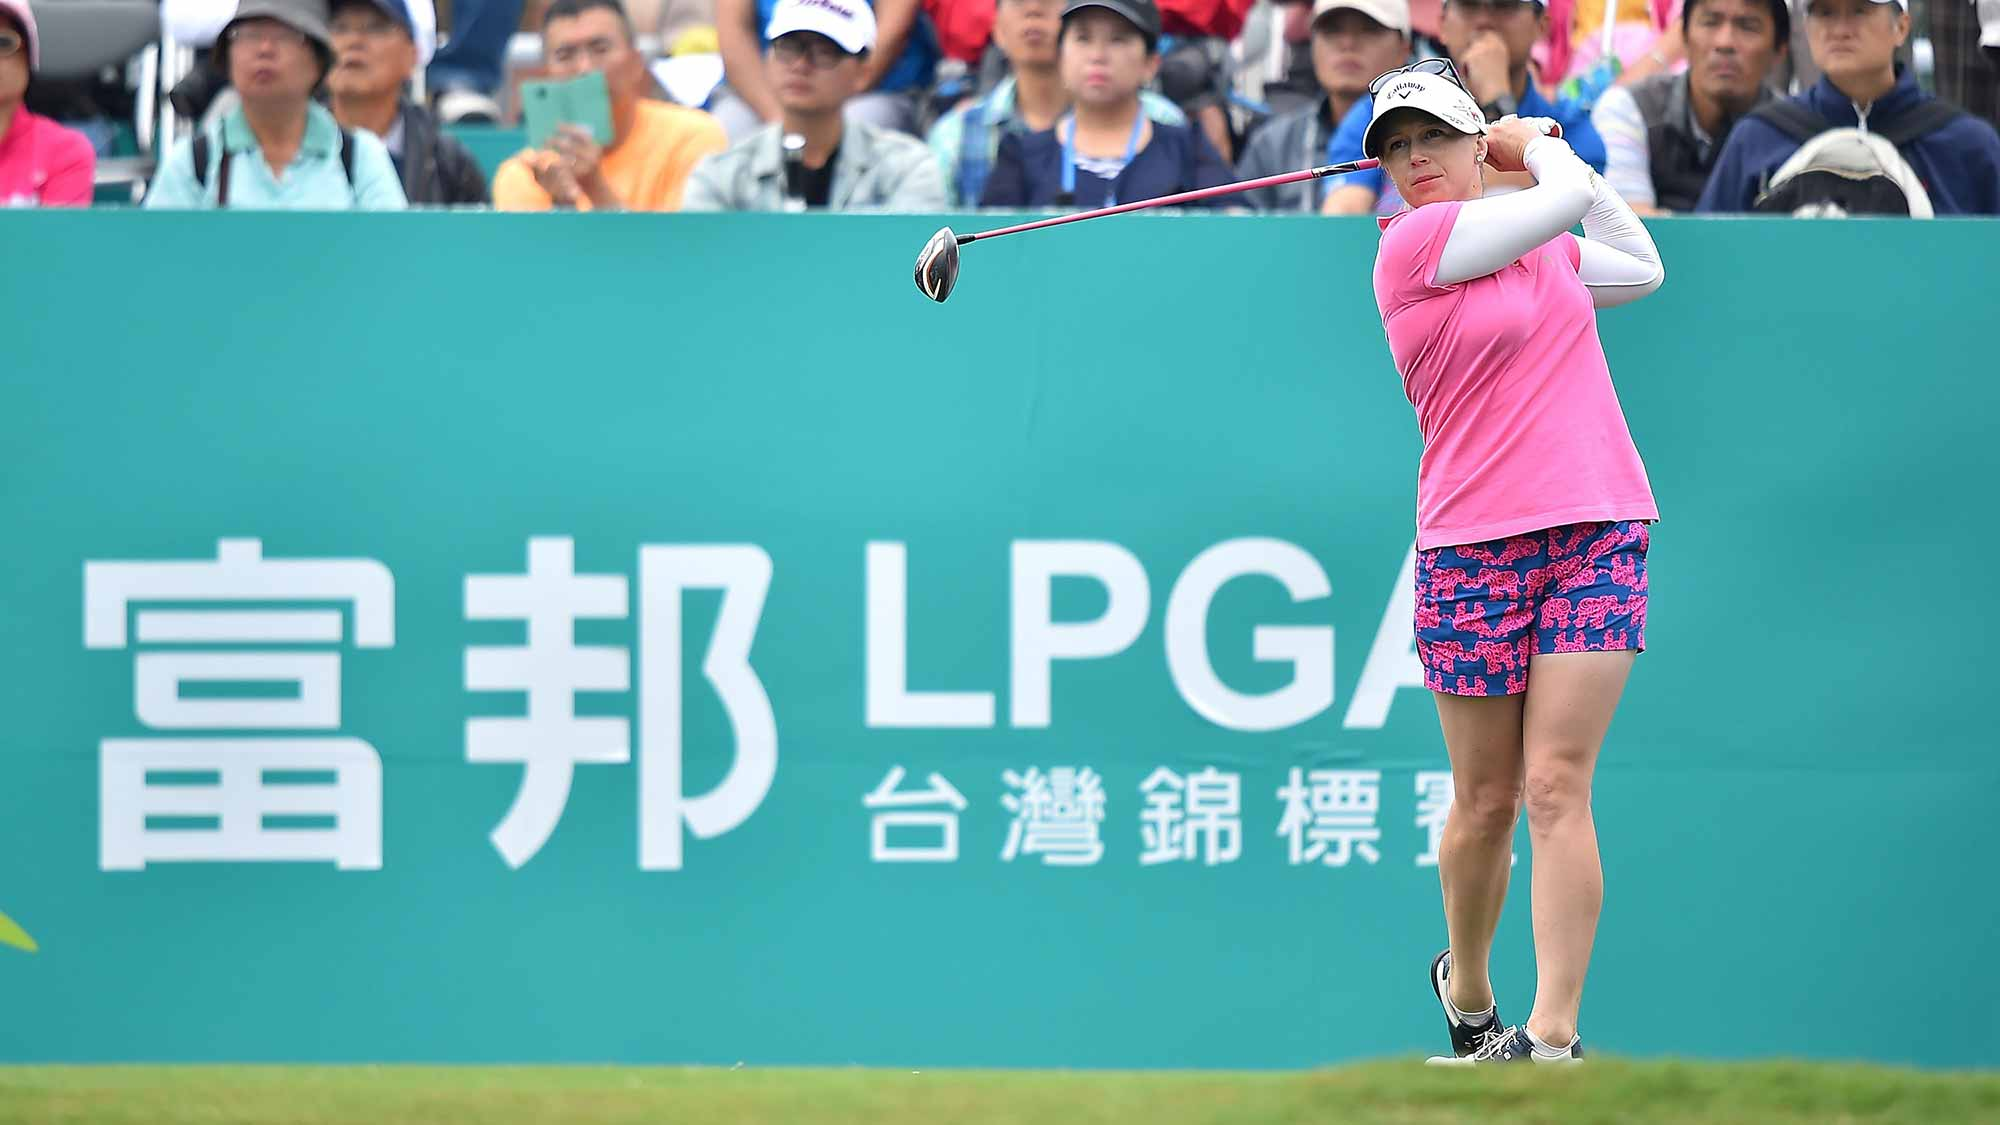 Morgan Pressel of the United States plays the shot during the round one of 2015 Fubon LPGA Taiwan Championship at Miramar Golf & Country Club